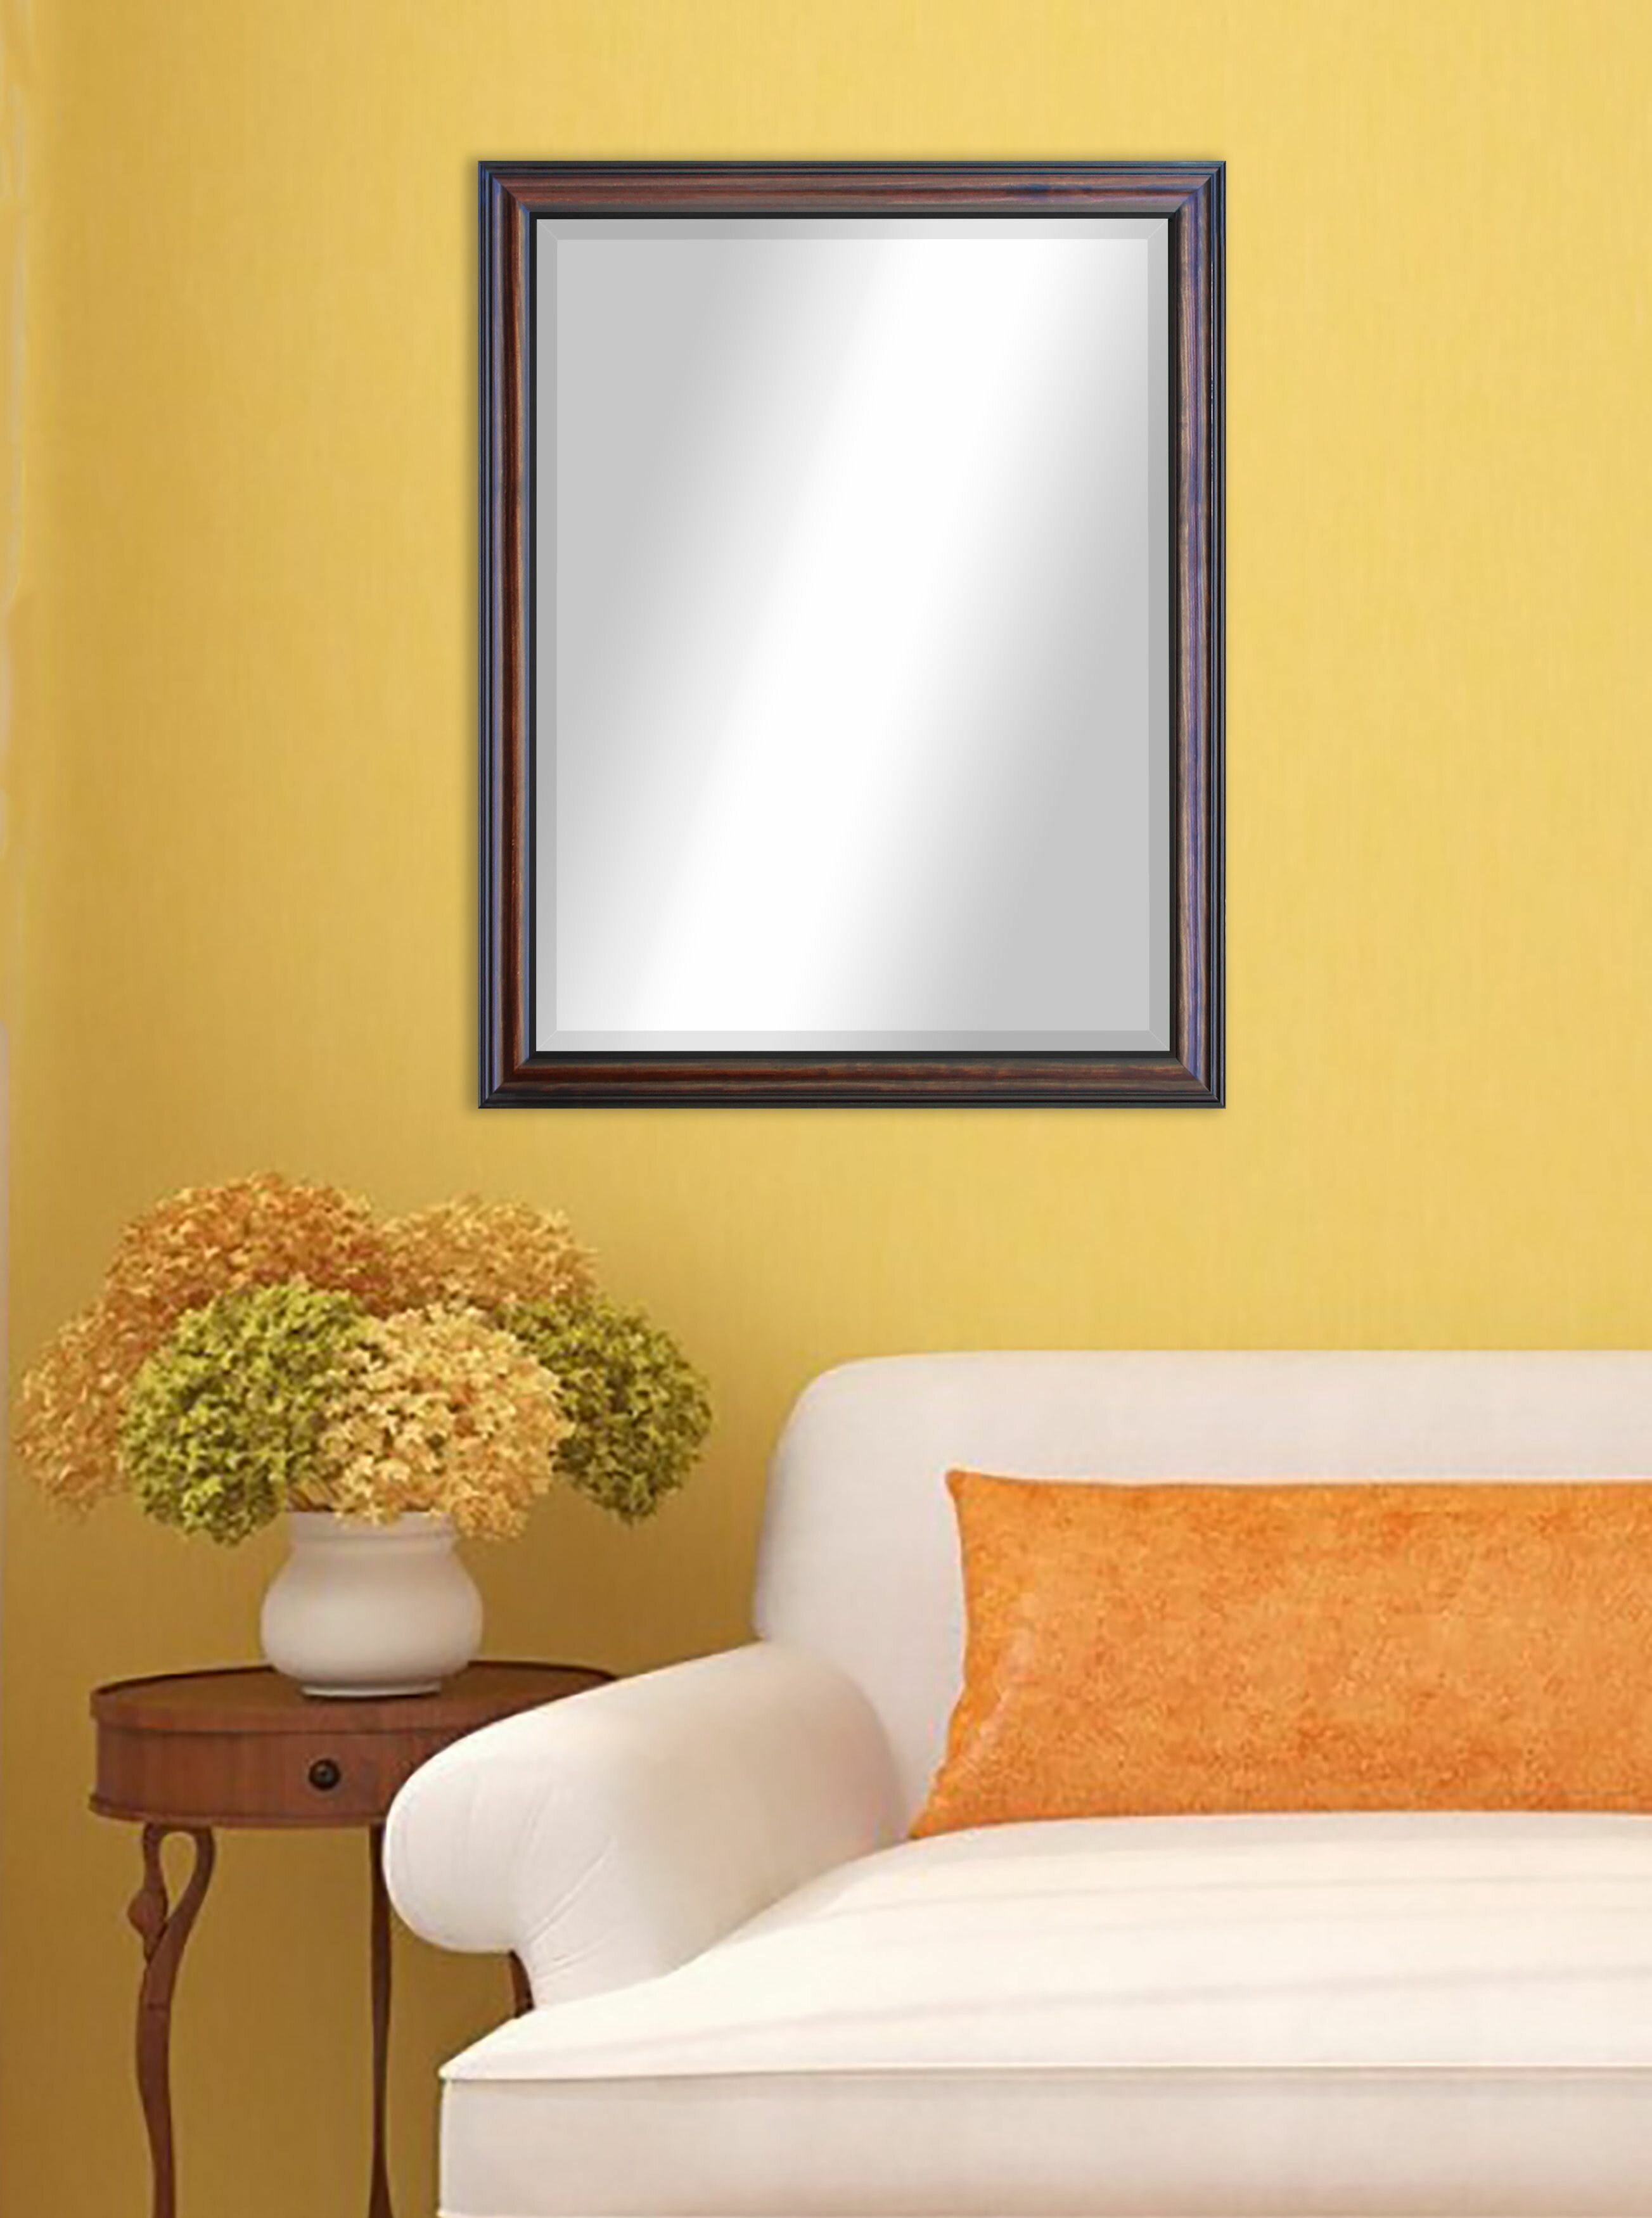 Darby Home Co Wall Mirror & Reviews | Wayfair